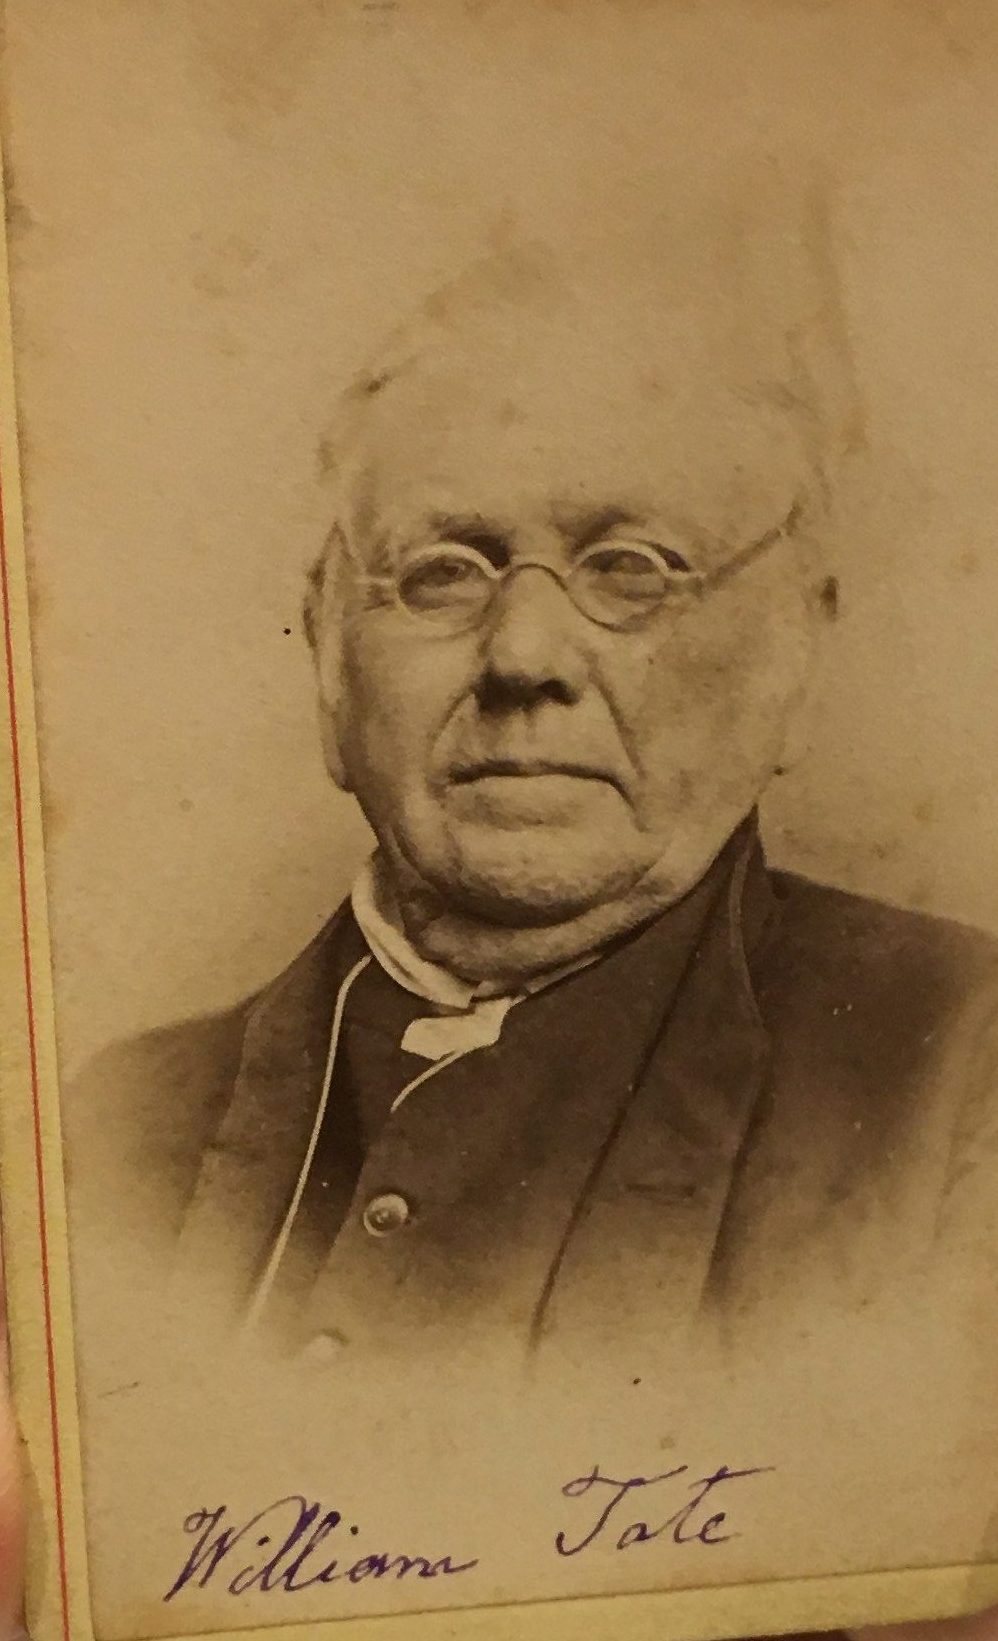 William Tate, photograph courtesy of Friends Historical Library, Swarthmore College, Swarthmore, PA